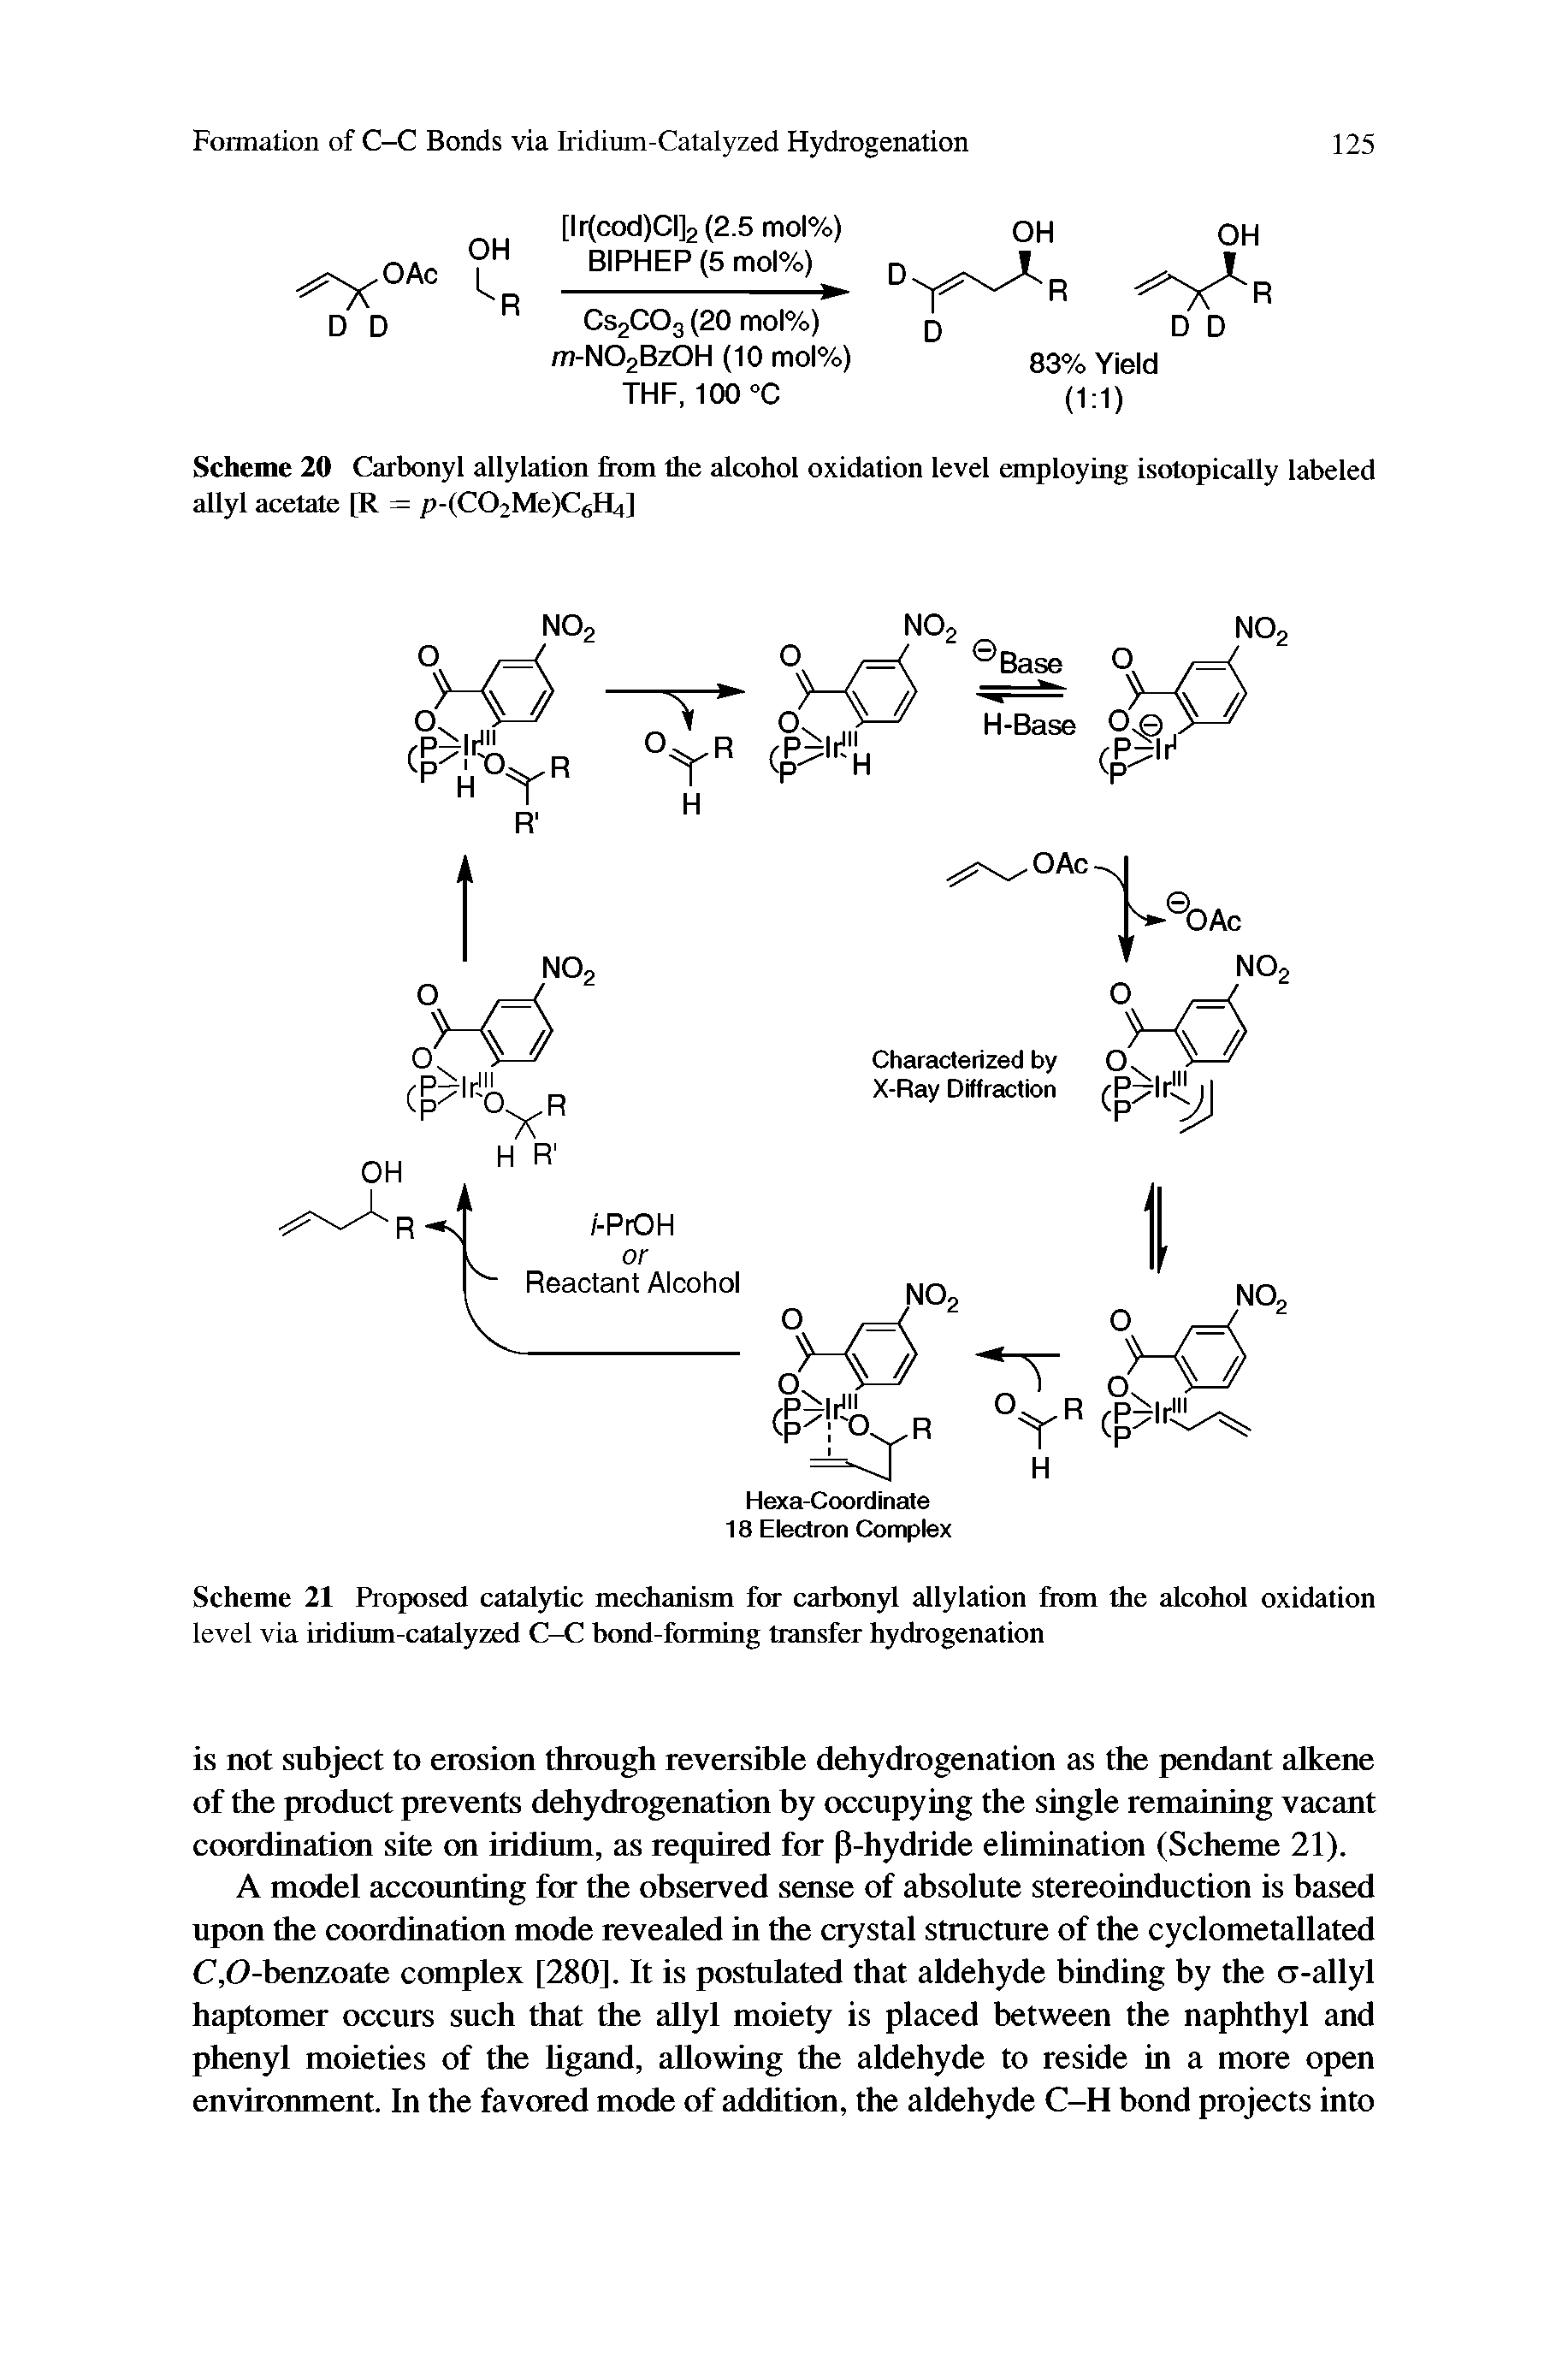 "Scheme 20 <a href=""/info/carbonyl_allylations"">Carbonyl allylation</a> from the <a href=""/info/oxidation_of_alcohols"">alcohol oxidation</a> level employing <a href=""/info/isotopic_labeling"">isotopically labeled</a> allyl acetate [R = p-(C02Me)C6H4]"